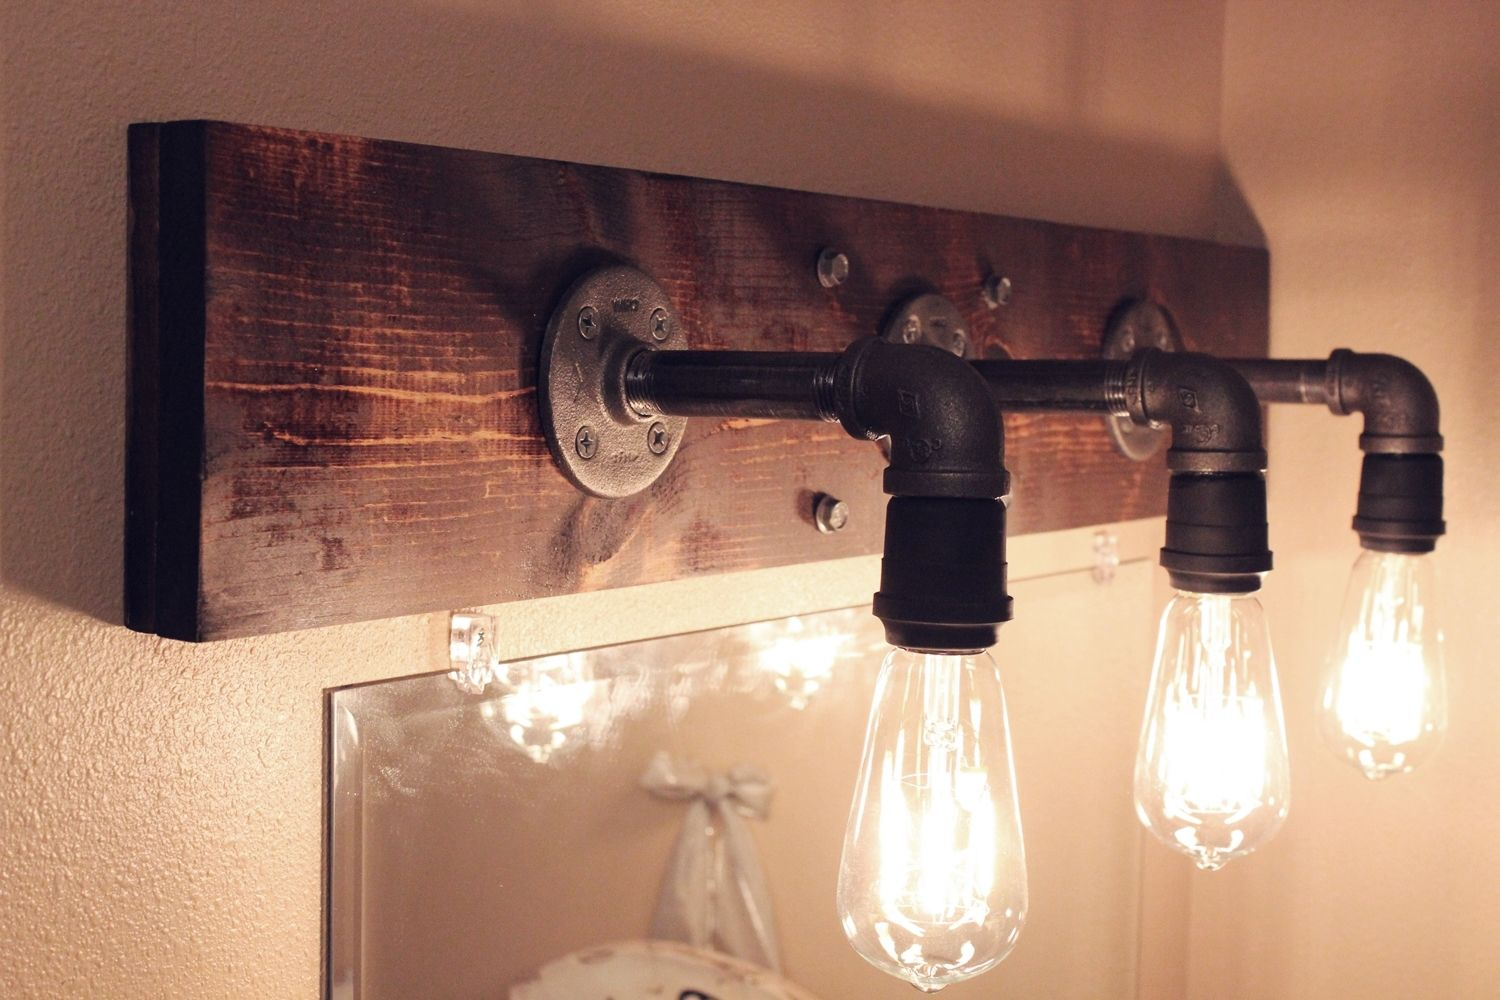 how to make your own diy industrial light fixtures right now - How To Make Your Own DIY Industrial Light Fixtures Right Now